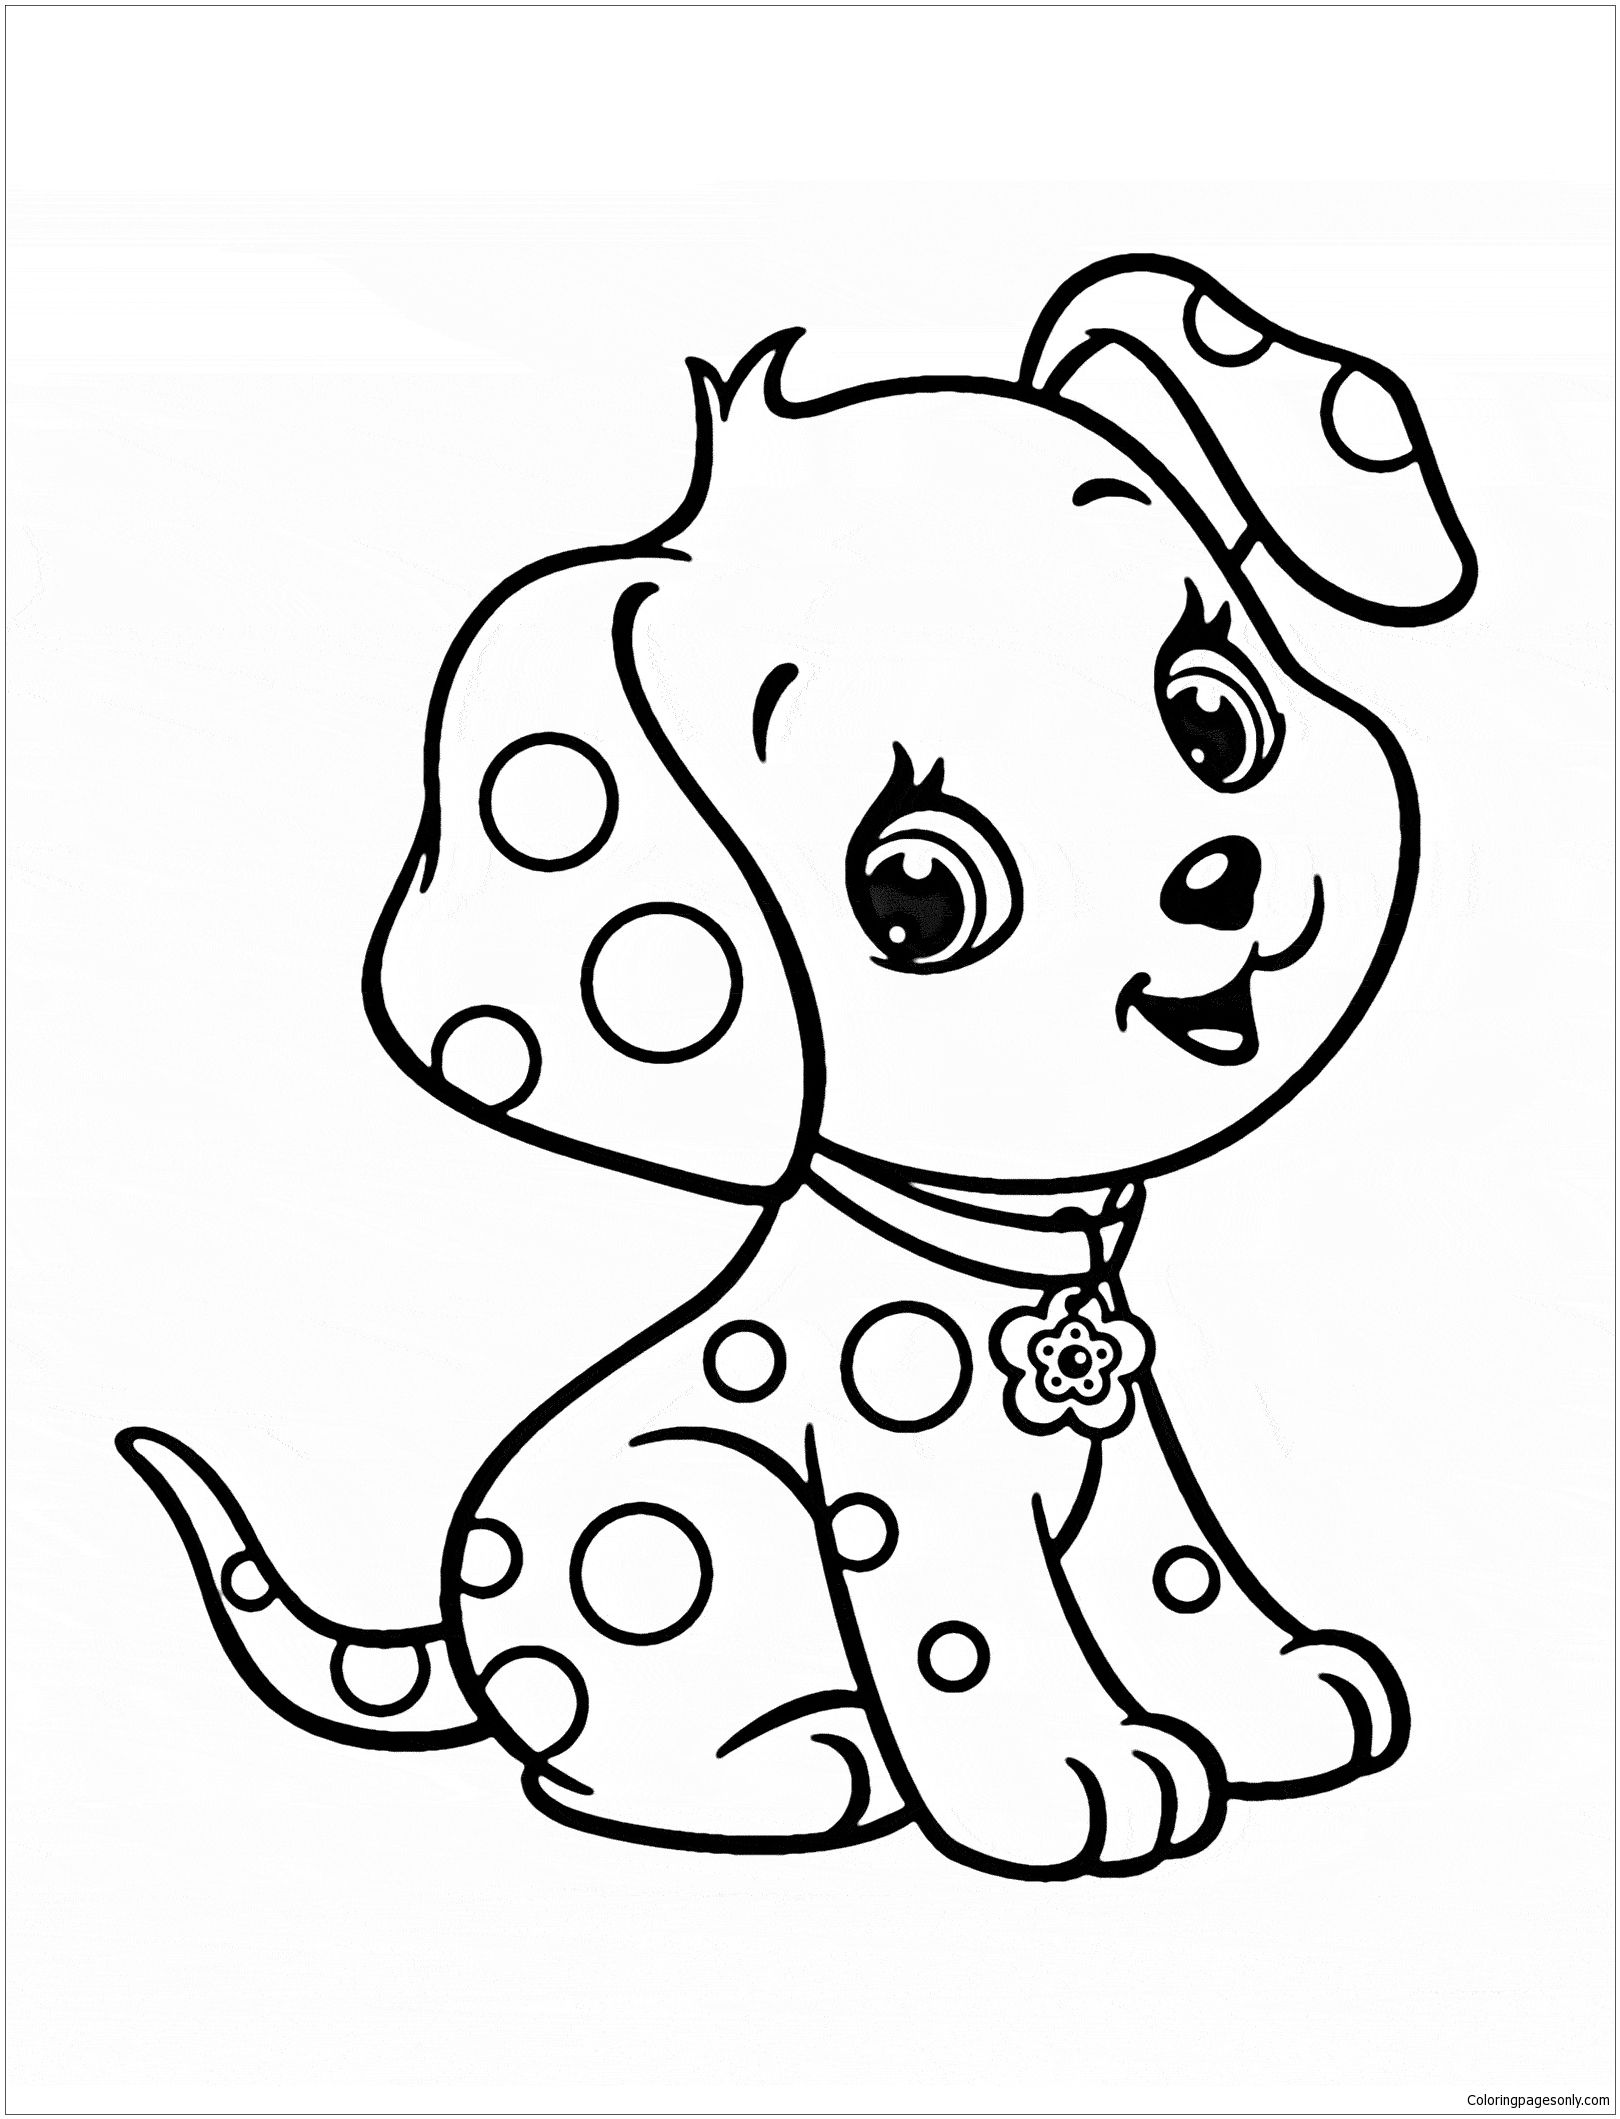 Kawaii puppy coloring pages